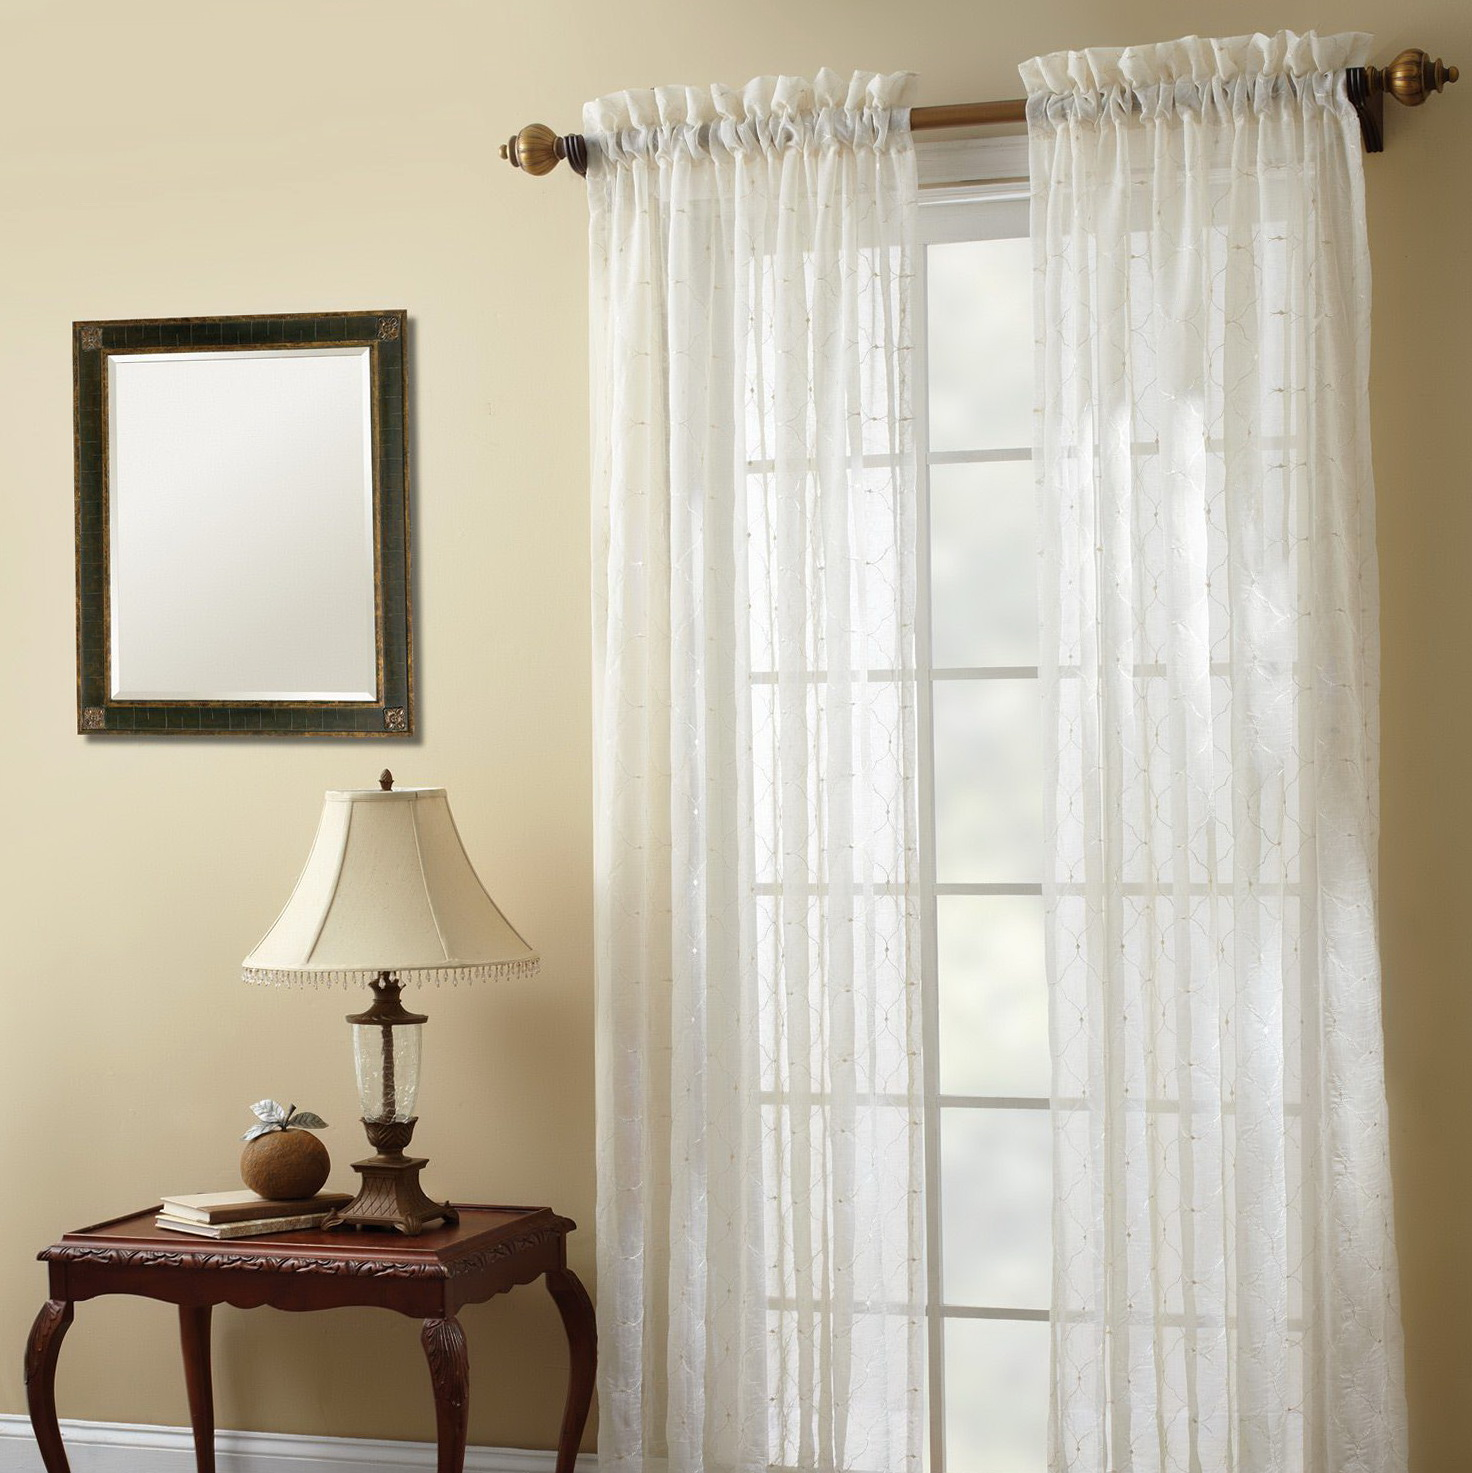 Sheer bathroom window curtains home design ideas for Bathroom window curtains